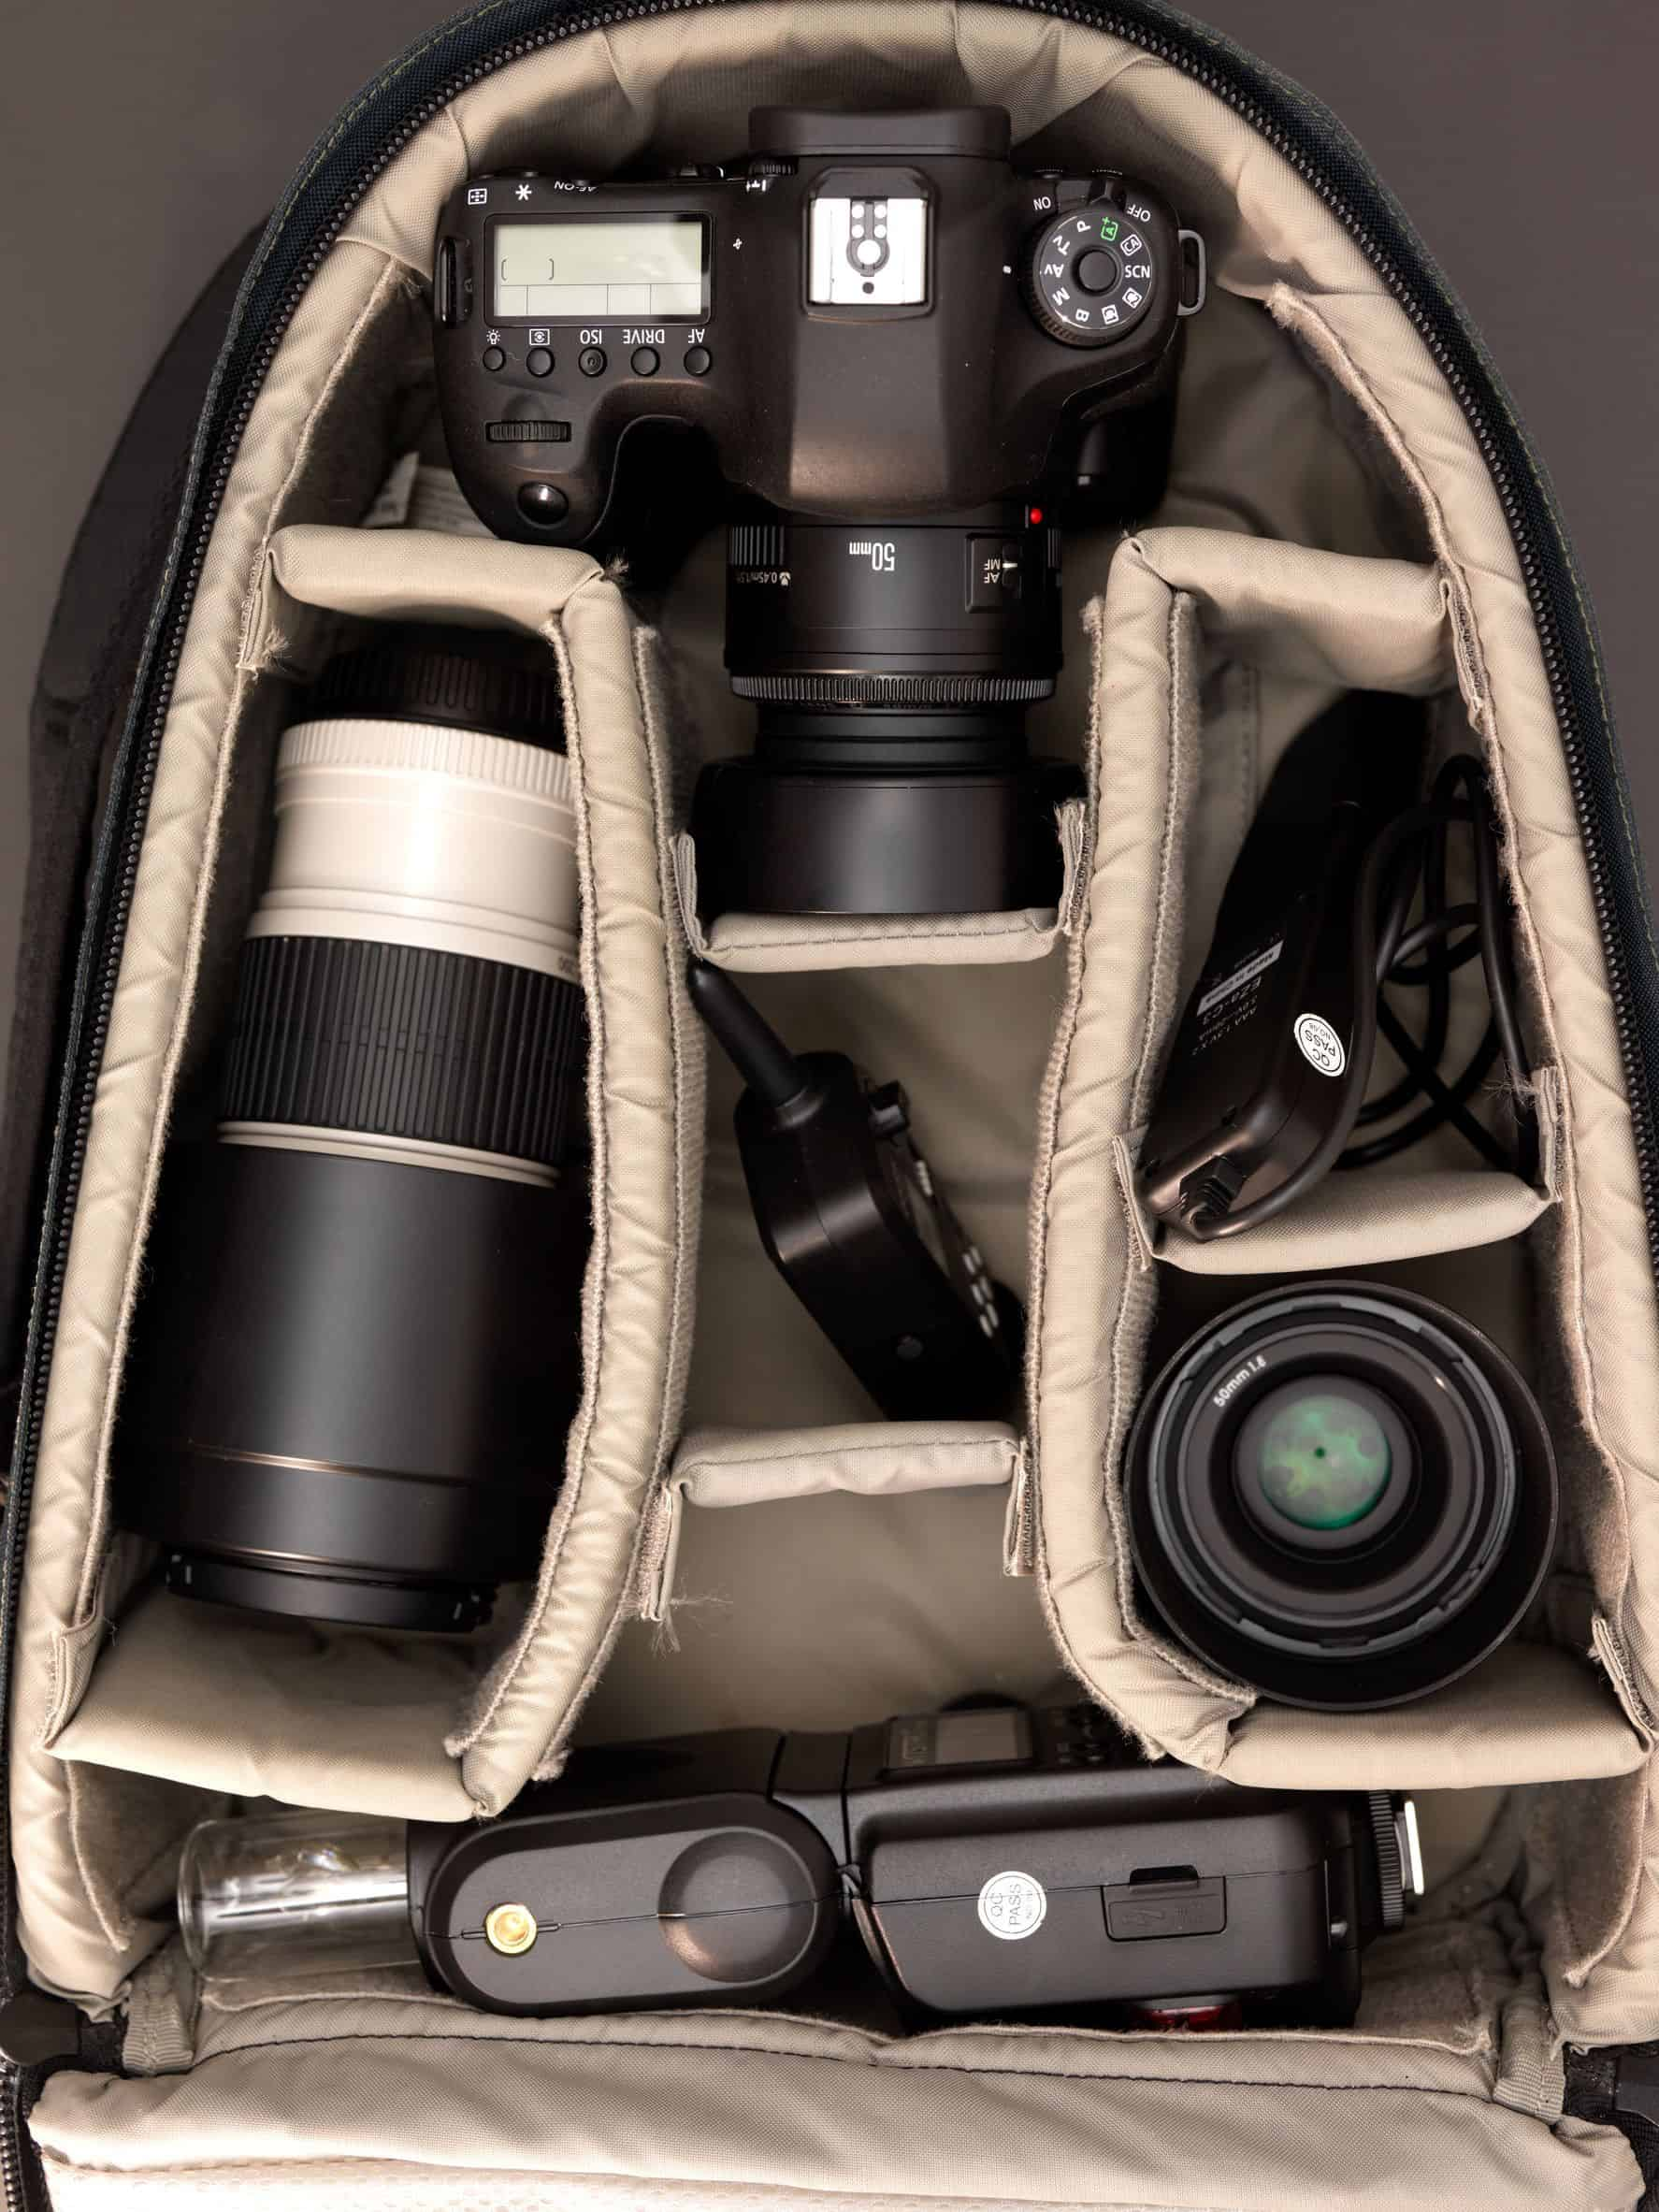 Are Camera Bags Allowed as Hand Luggage (Carry-on)?